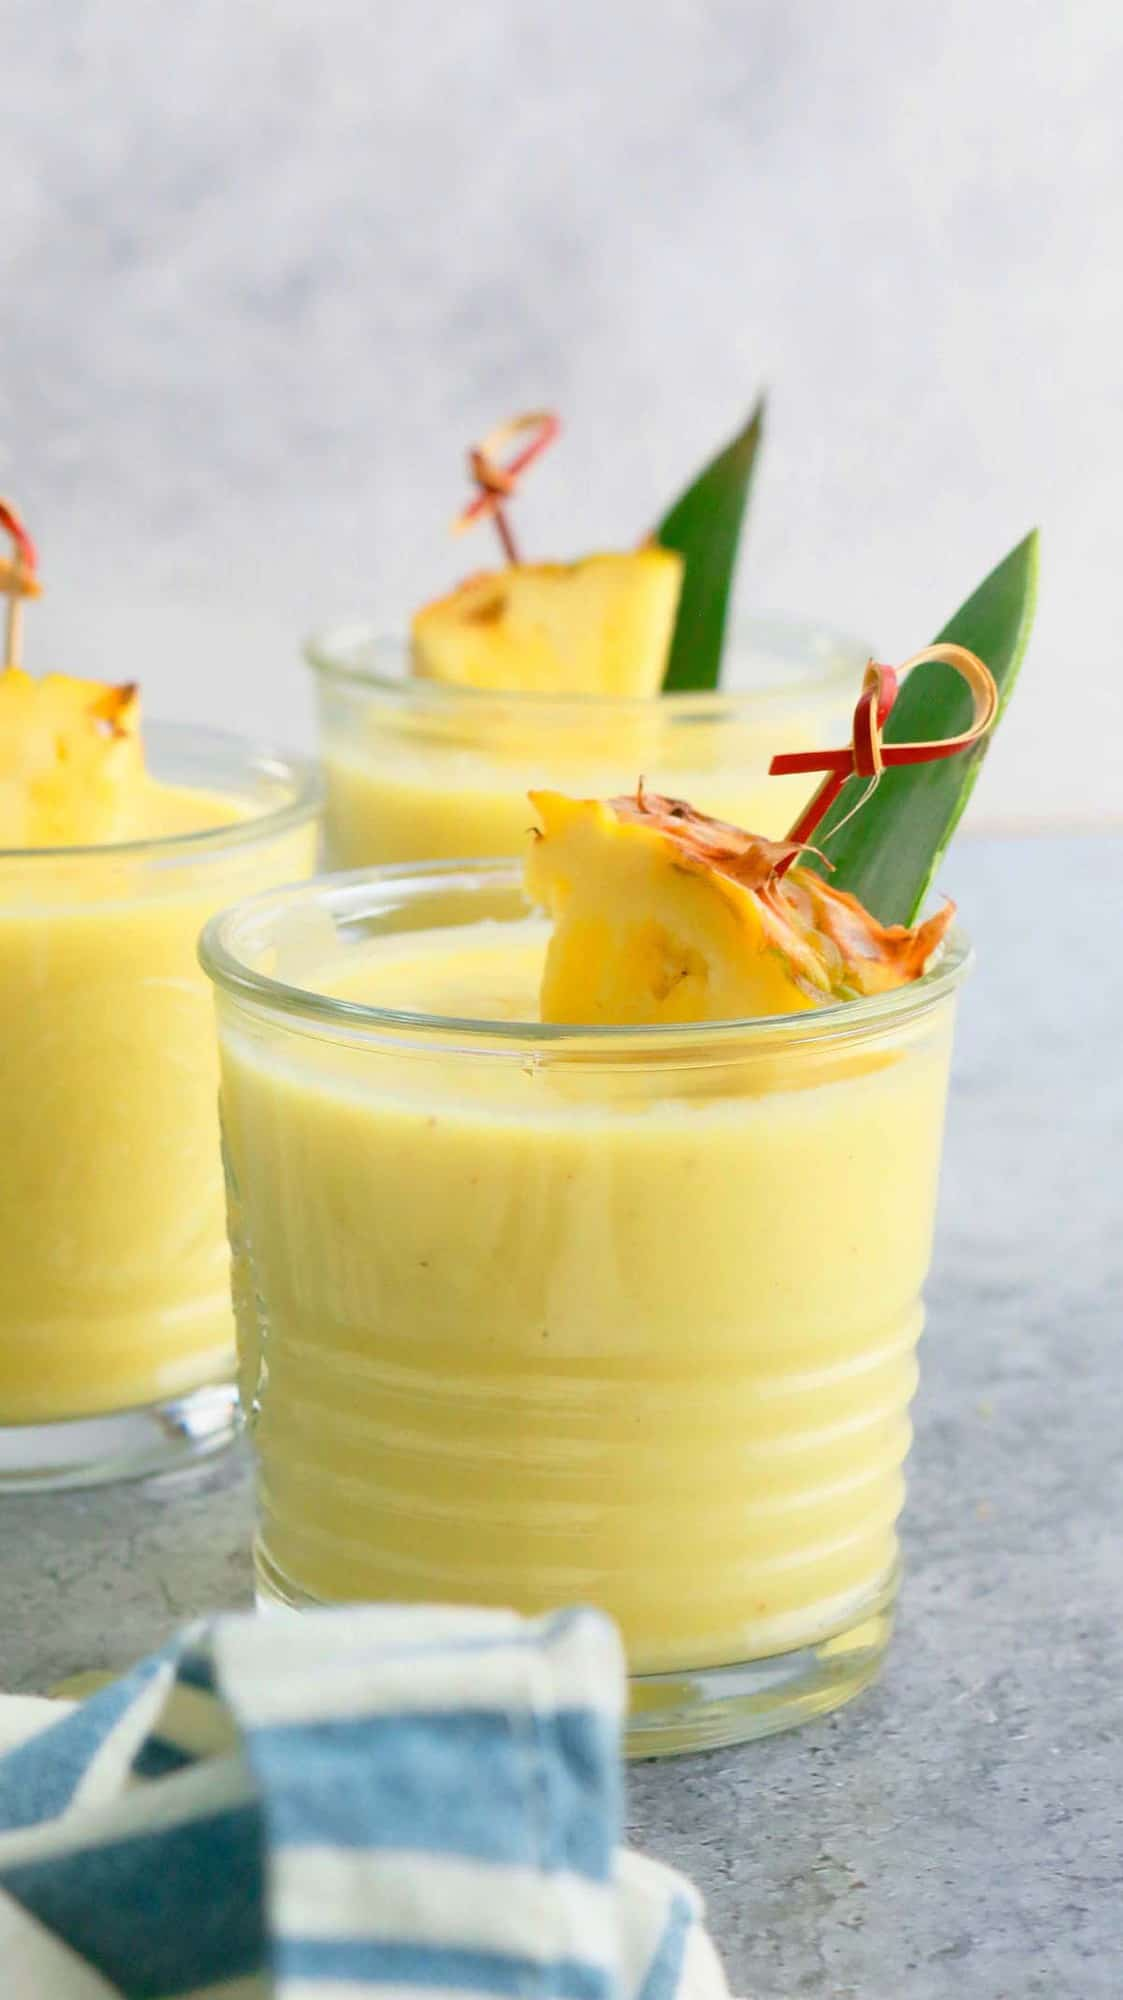 3 glasses filled with pina colada smoothie